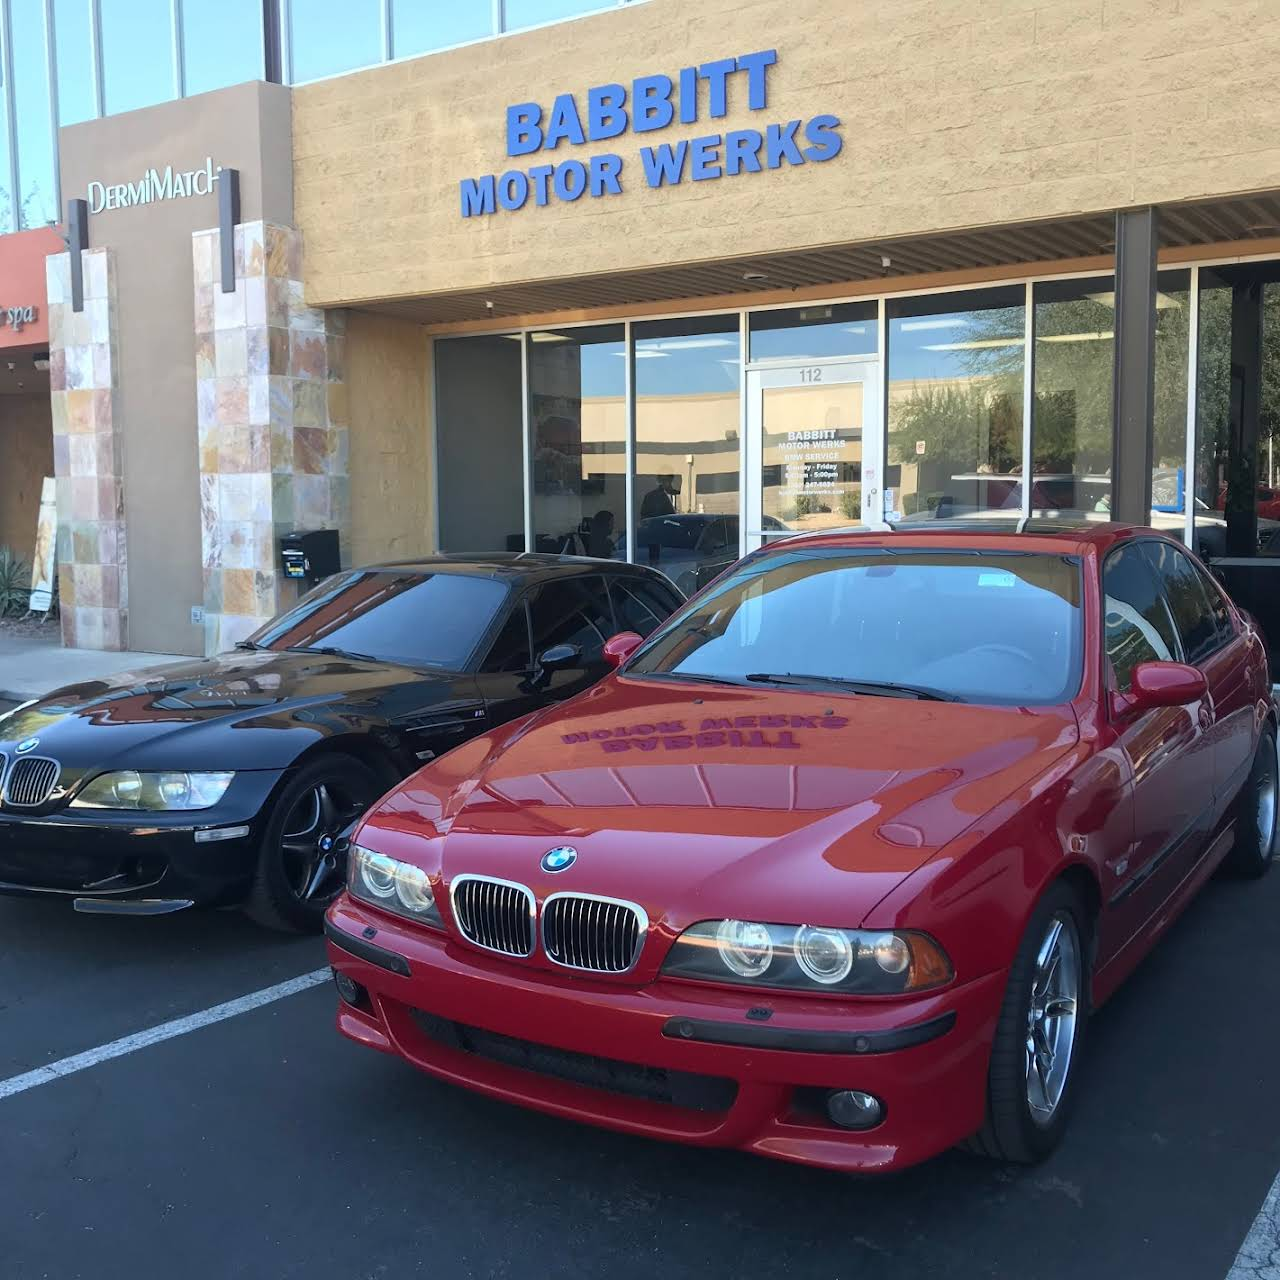 Babbitt Motor Werks Scottsdale. BMW Service and Repair Shop. Posted on Nov 2, 2018